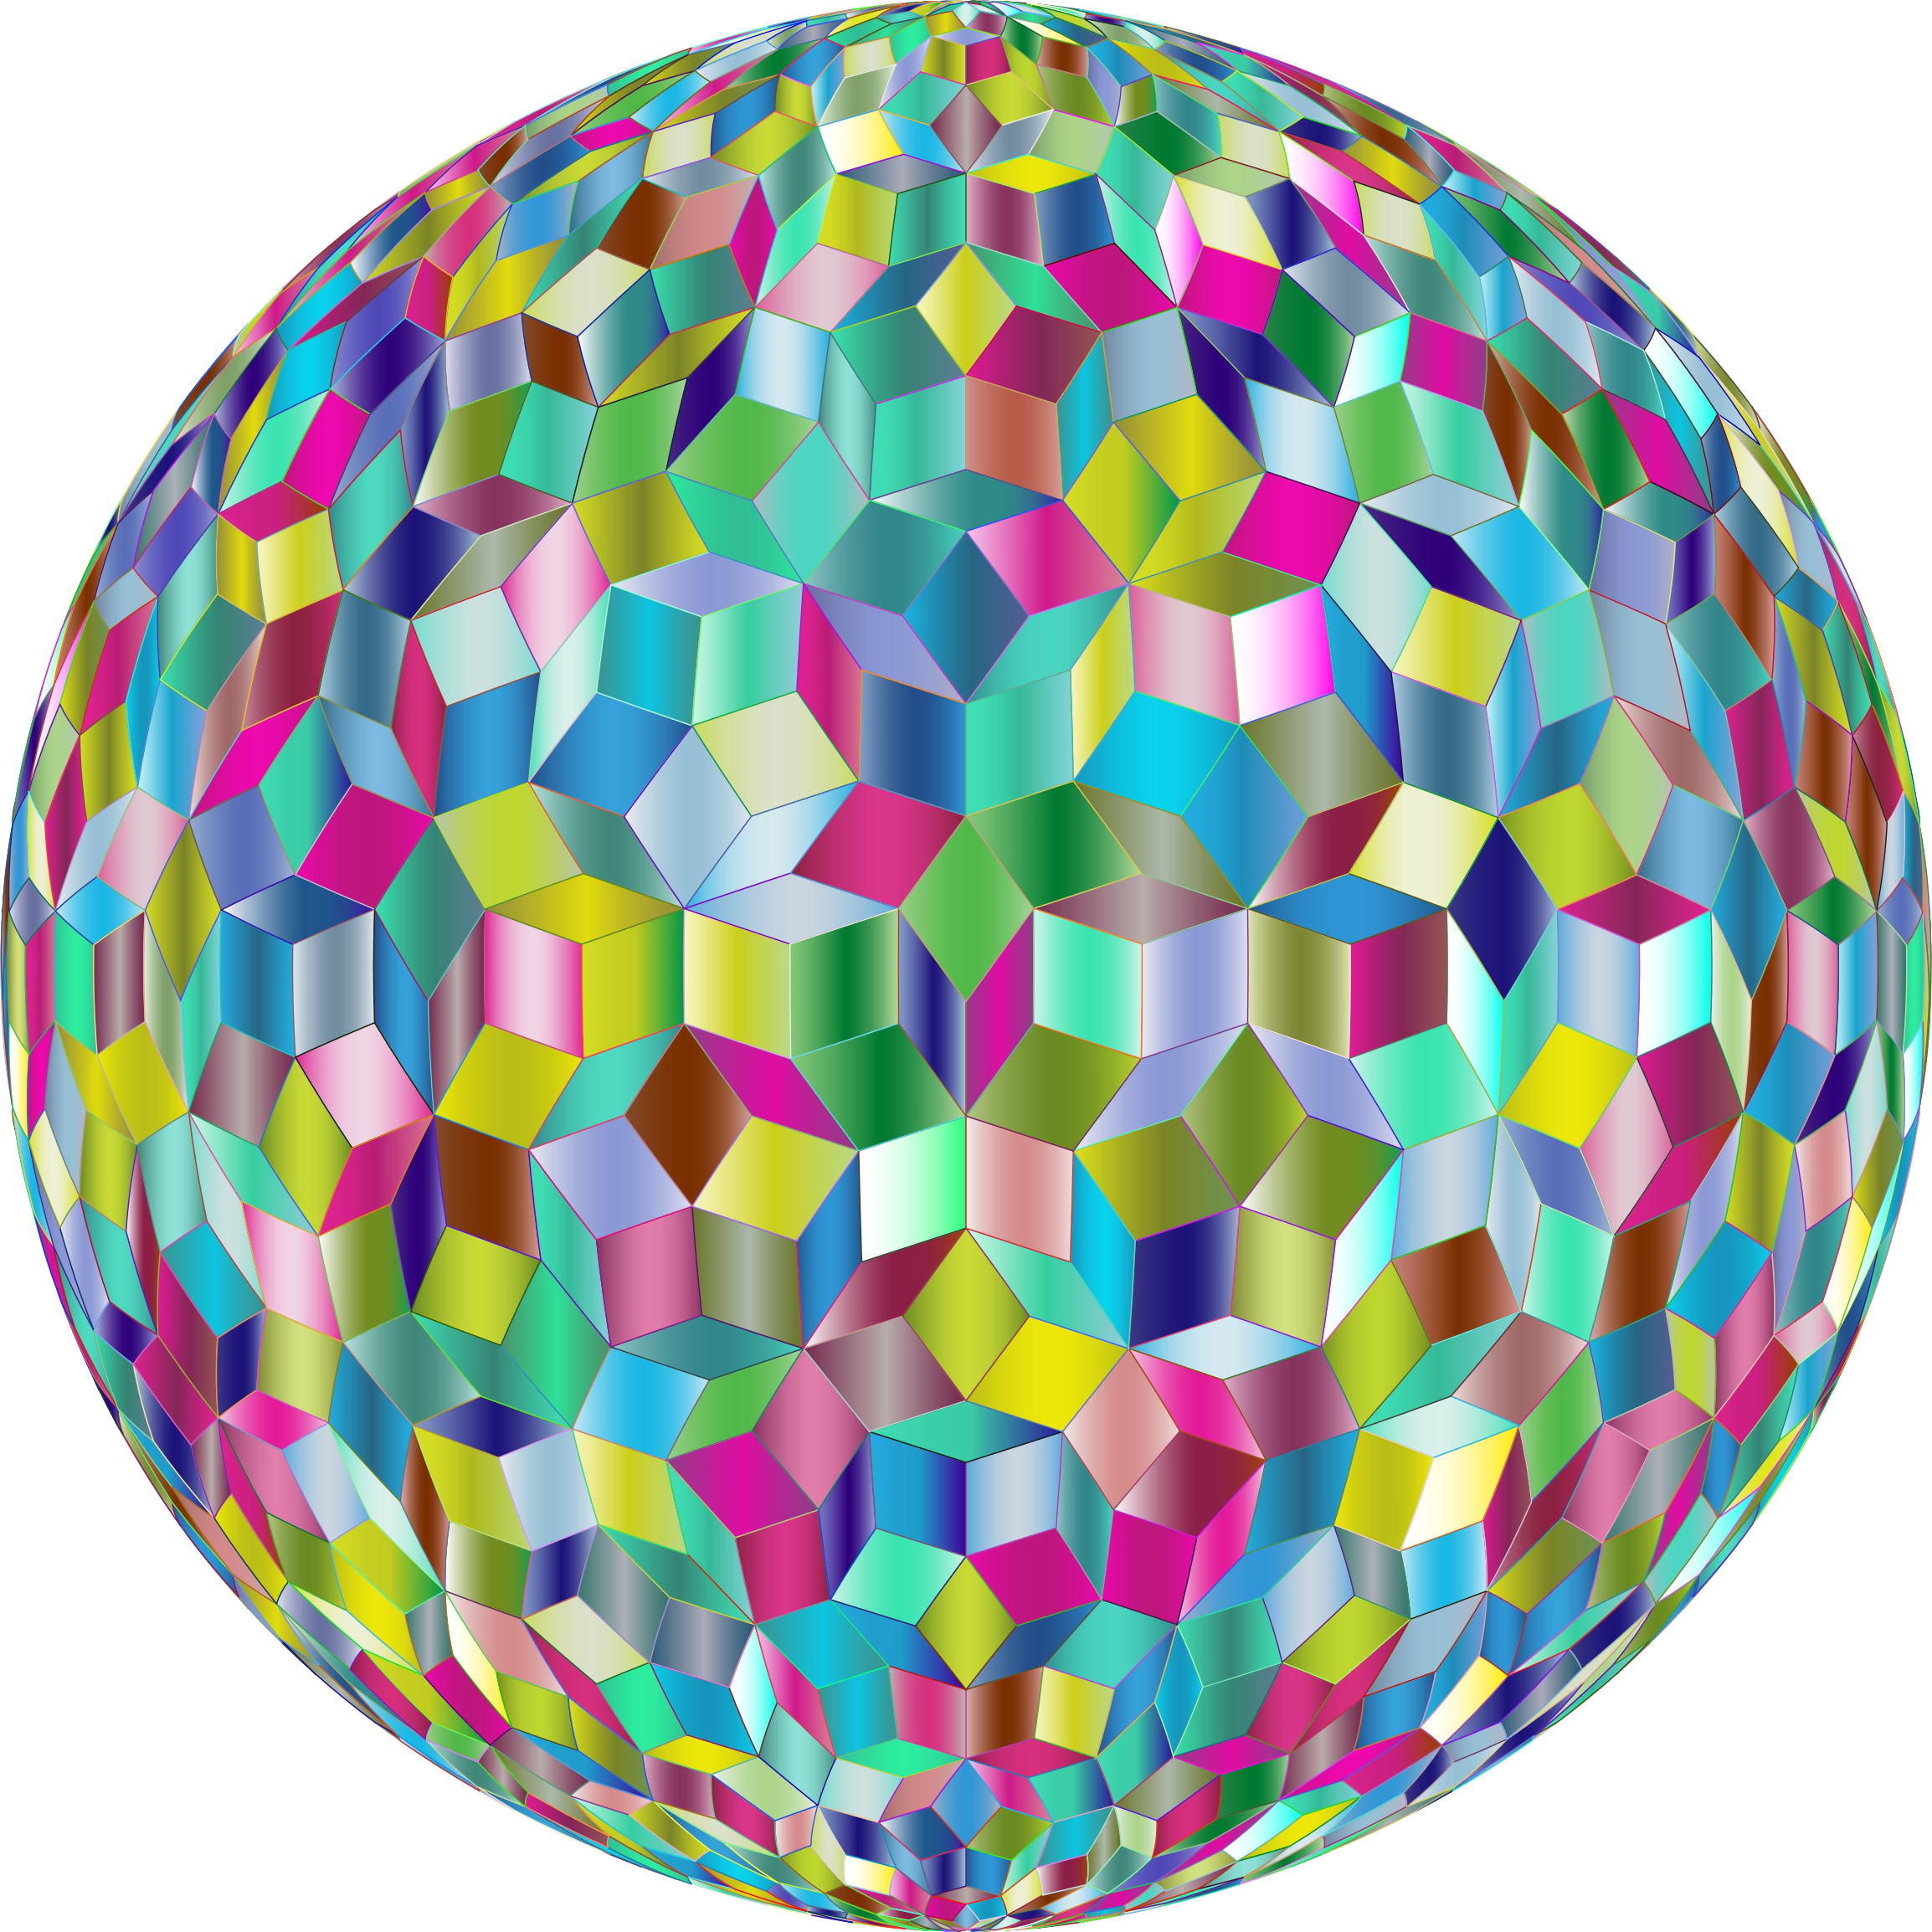 Prismatic Penrose Sphere Variation 2 by GDJ